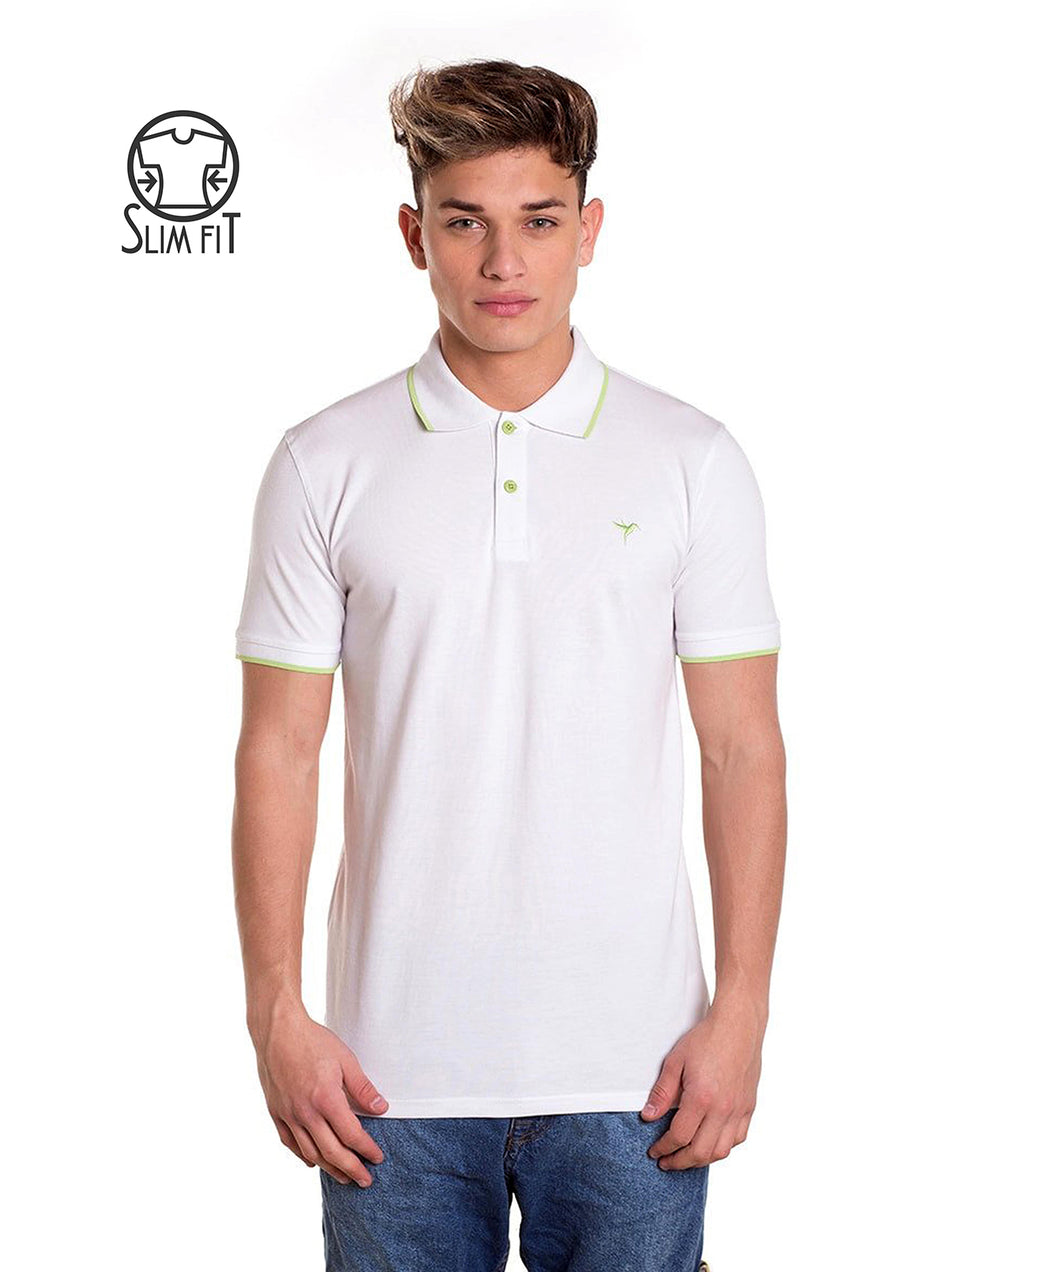 POLO BASIC WHITE & GREEN